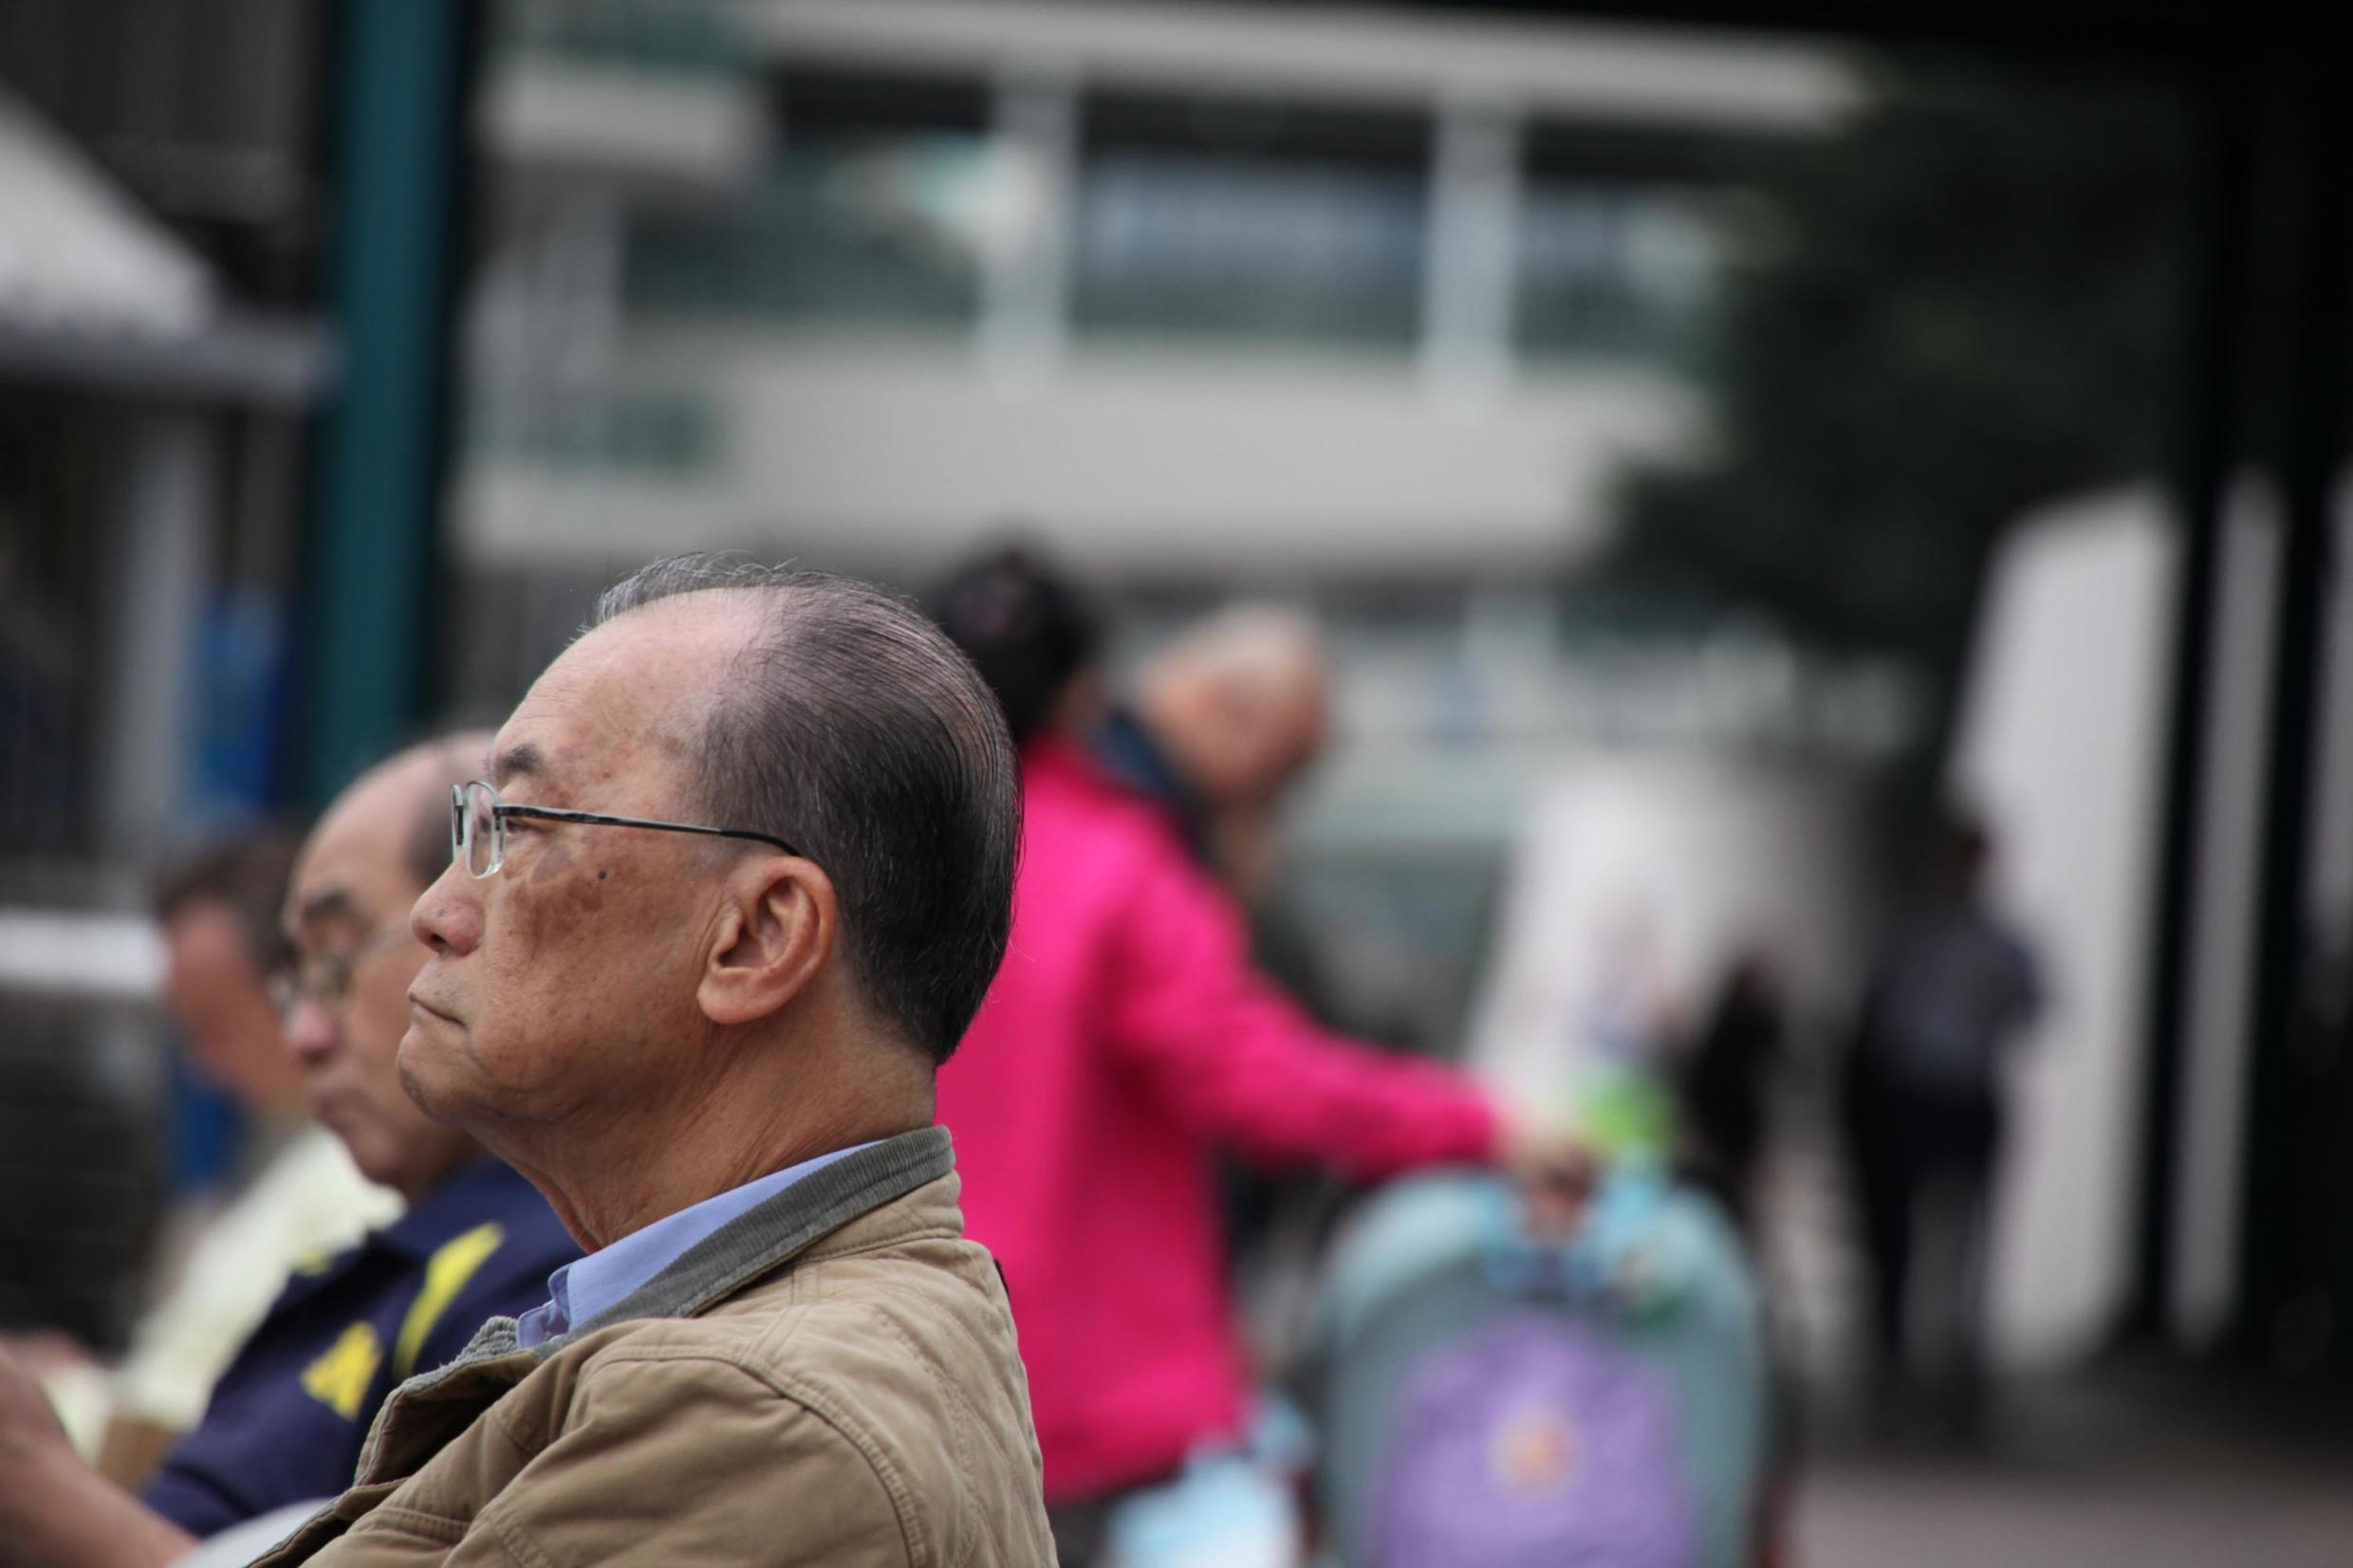 In Hong Kong, elderly can retire only at 65 if they want a state allowance